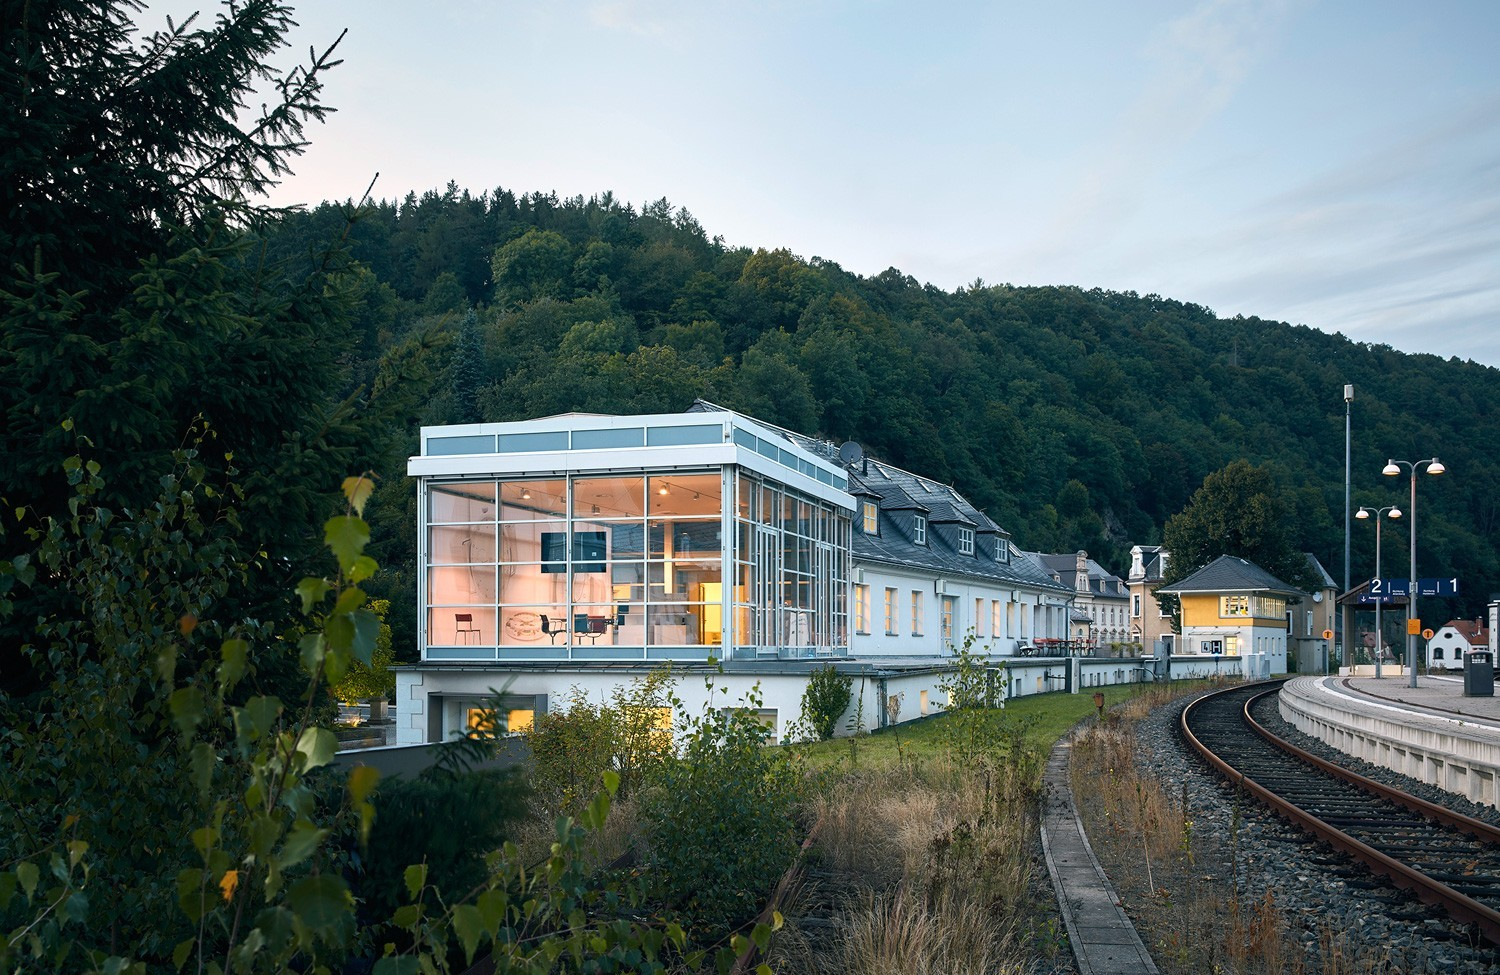 NOMOS Glashütte headquarters in the old railway station. Copyright: NOMOS Glashütte